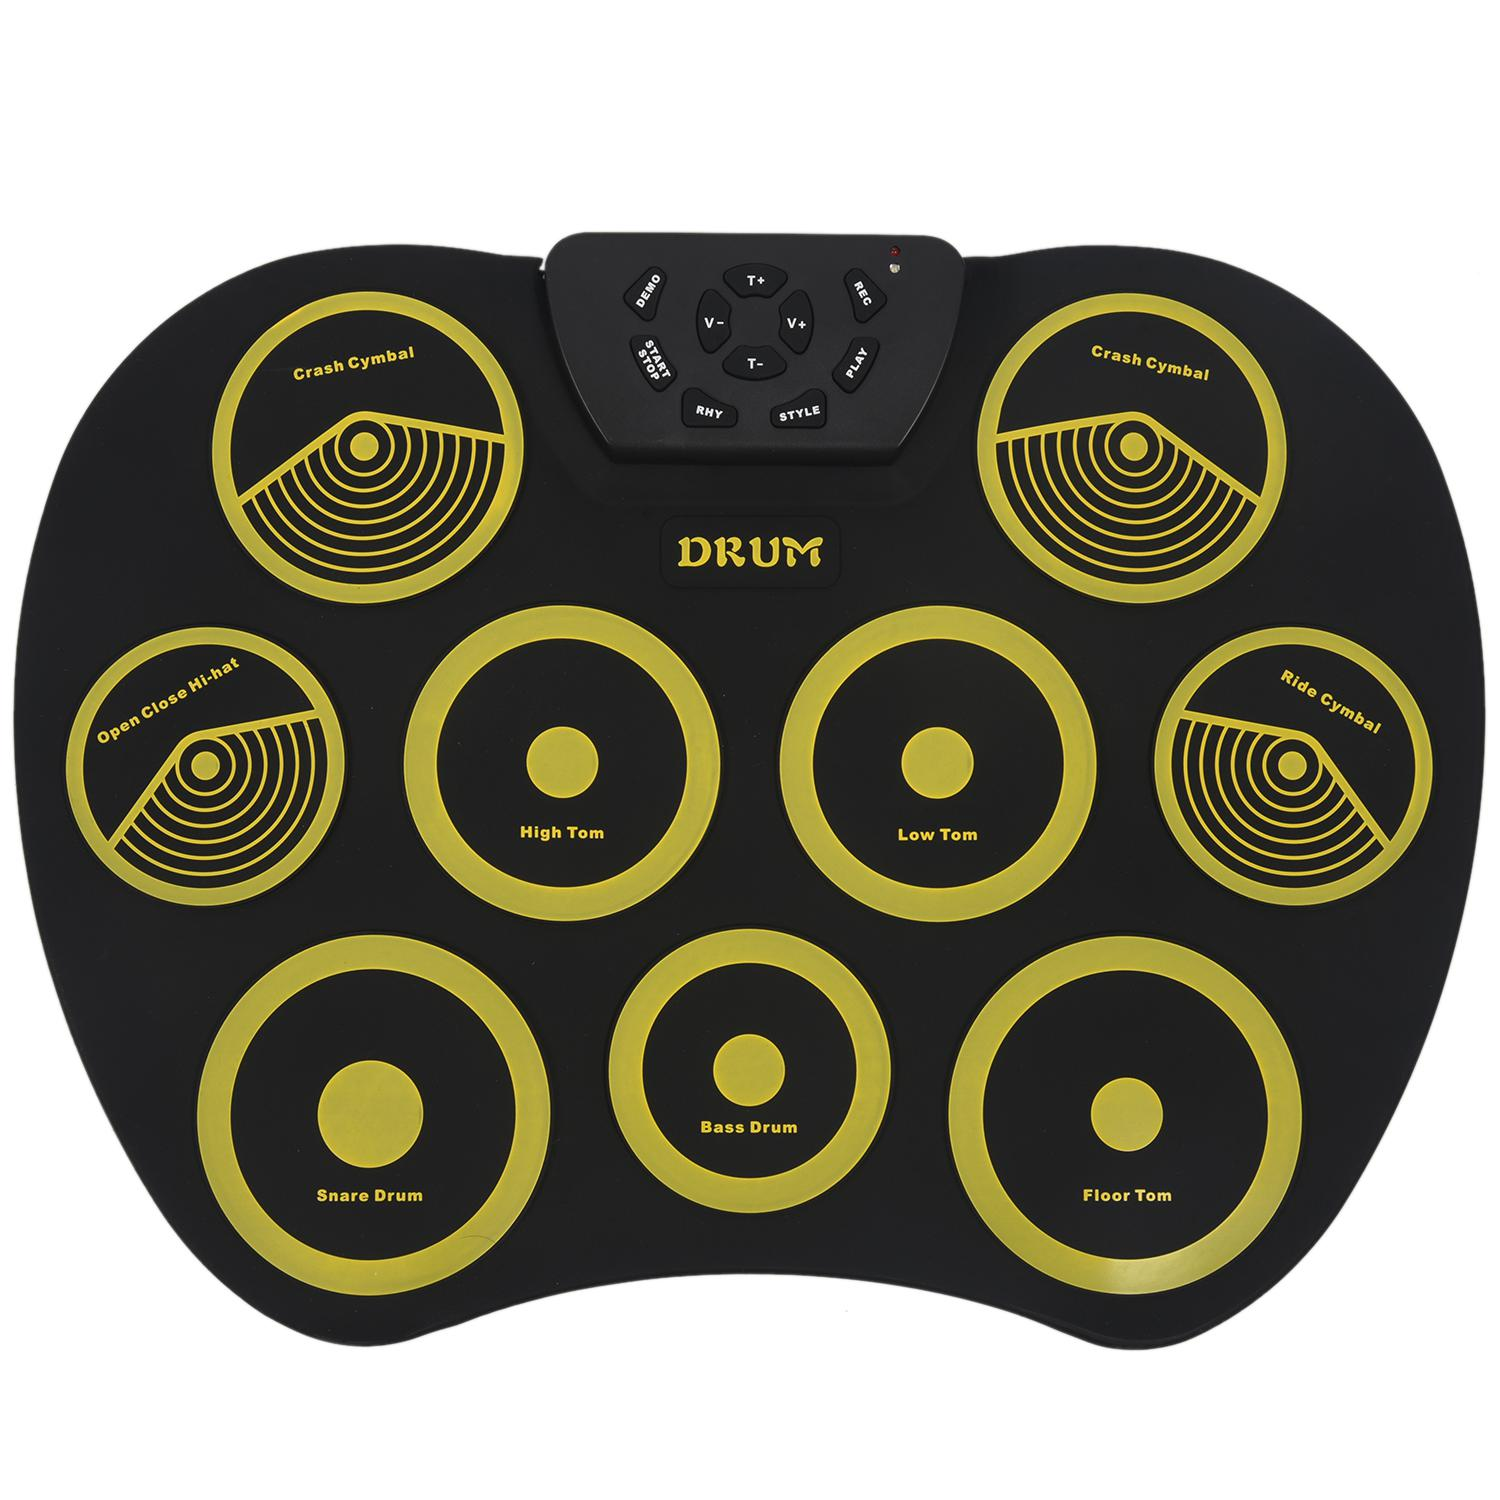 Portable Electronics Drum Set Roll Up Drum Kit 9 Silicone Pads USB Powered with Foot Pedals Drumsticks USB CablePortable Electronics Drum Set Roll Up Drum Kit 9 Silicone Pads USB Powered with Foot Pedals Drumsticks USB Cable